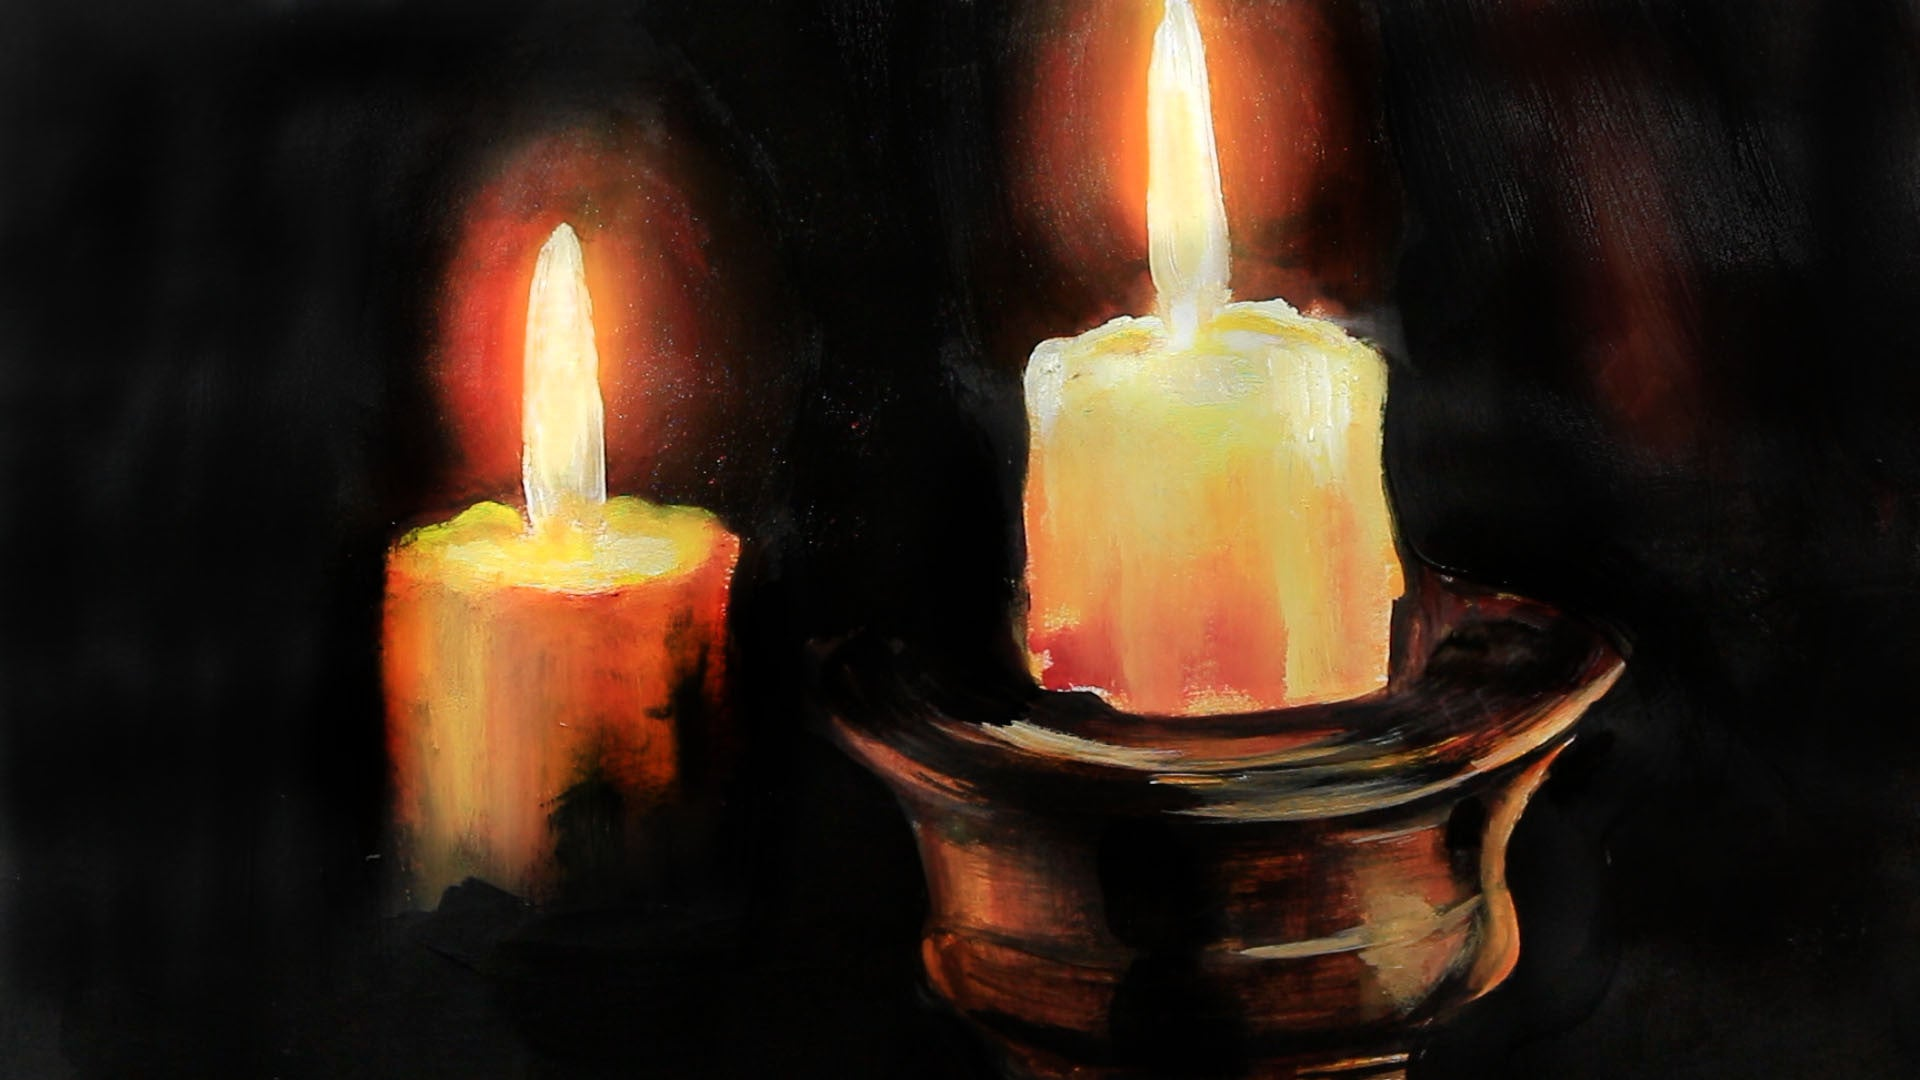 Painting Candles Burning in the Dark - MG Art Gallery for melting candle painting  51ane